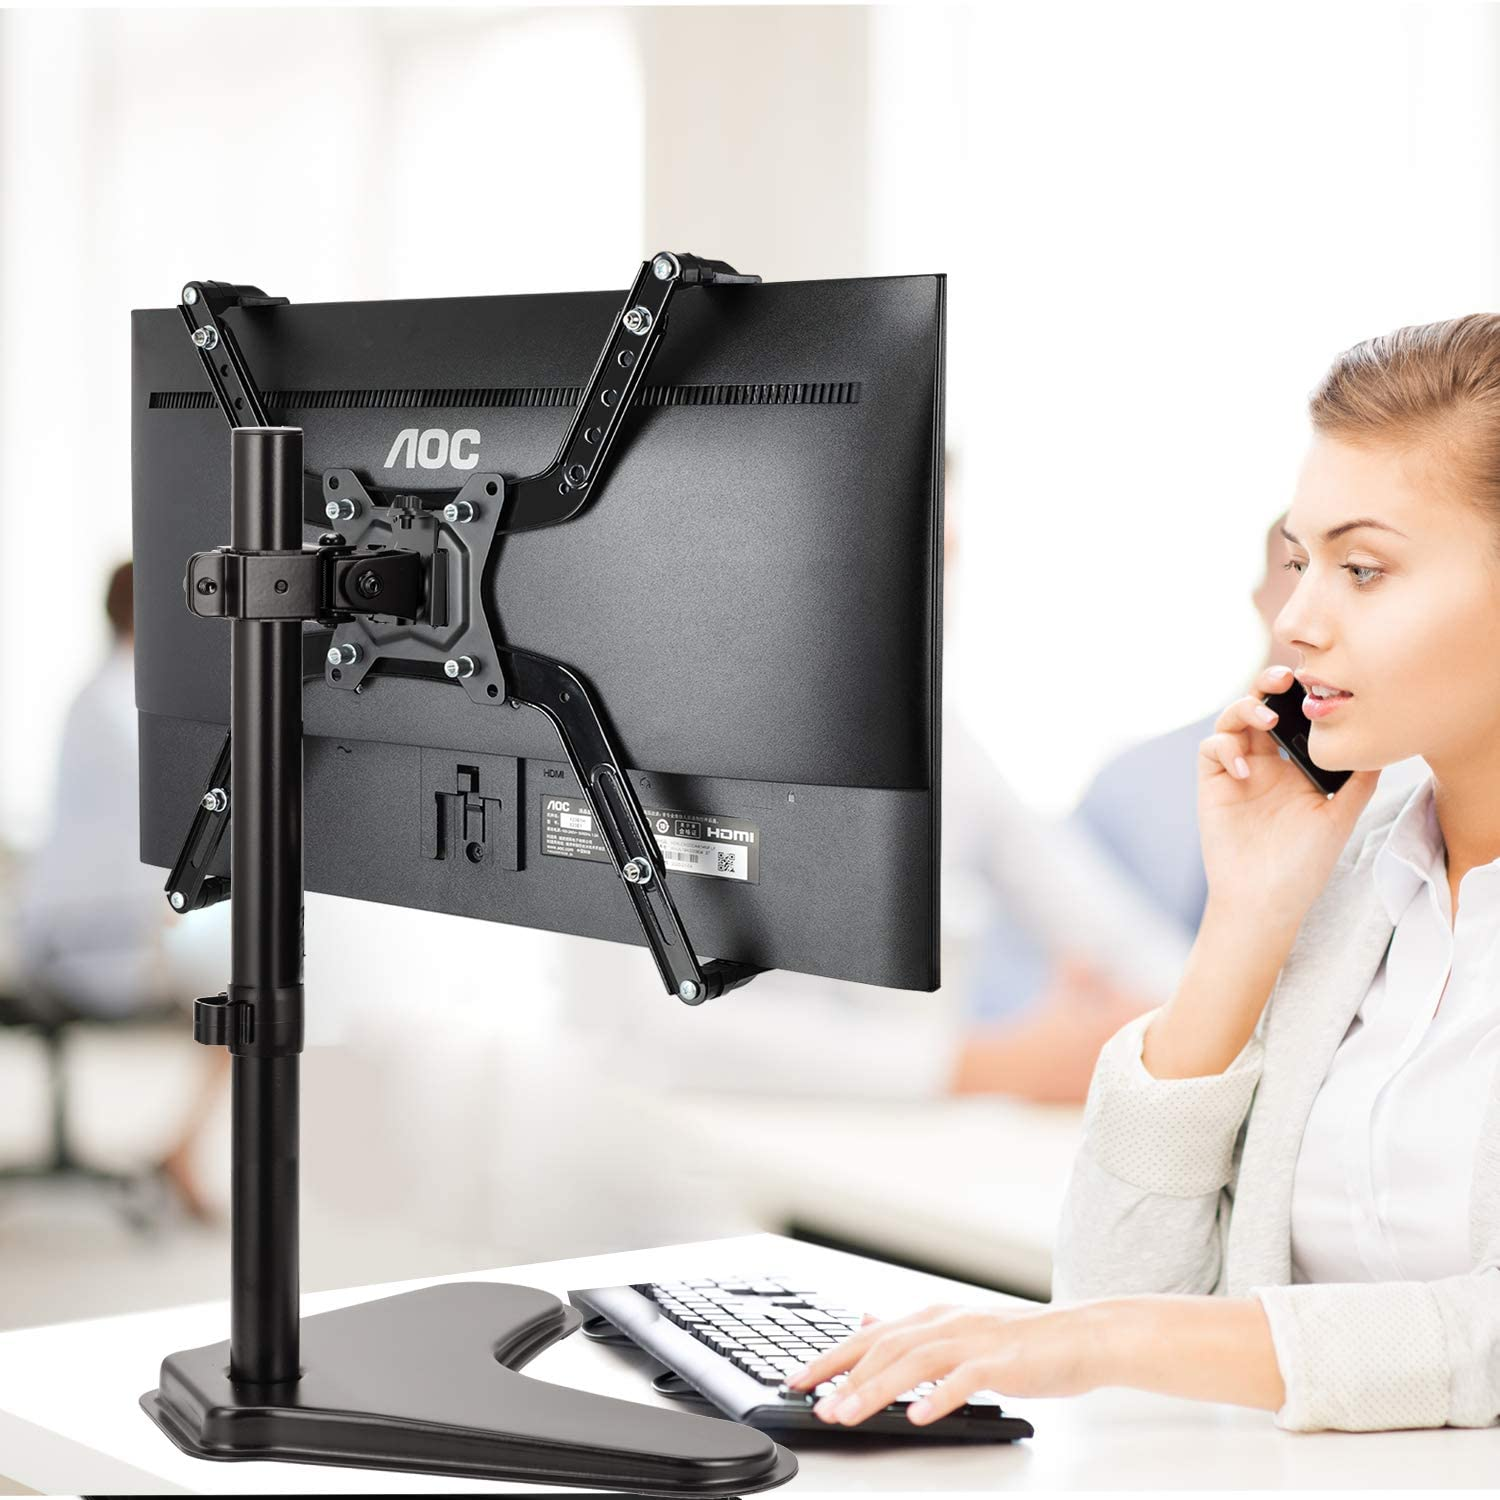 Non-VESA Adapter for 17 to 32 Inch Monitor Screens to 75x75 and 100x100 VESA Mount Universal VESA Mount Adapter Kit